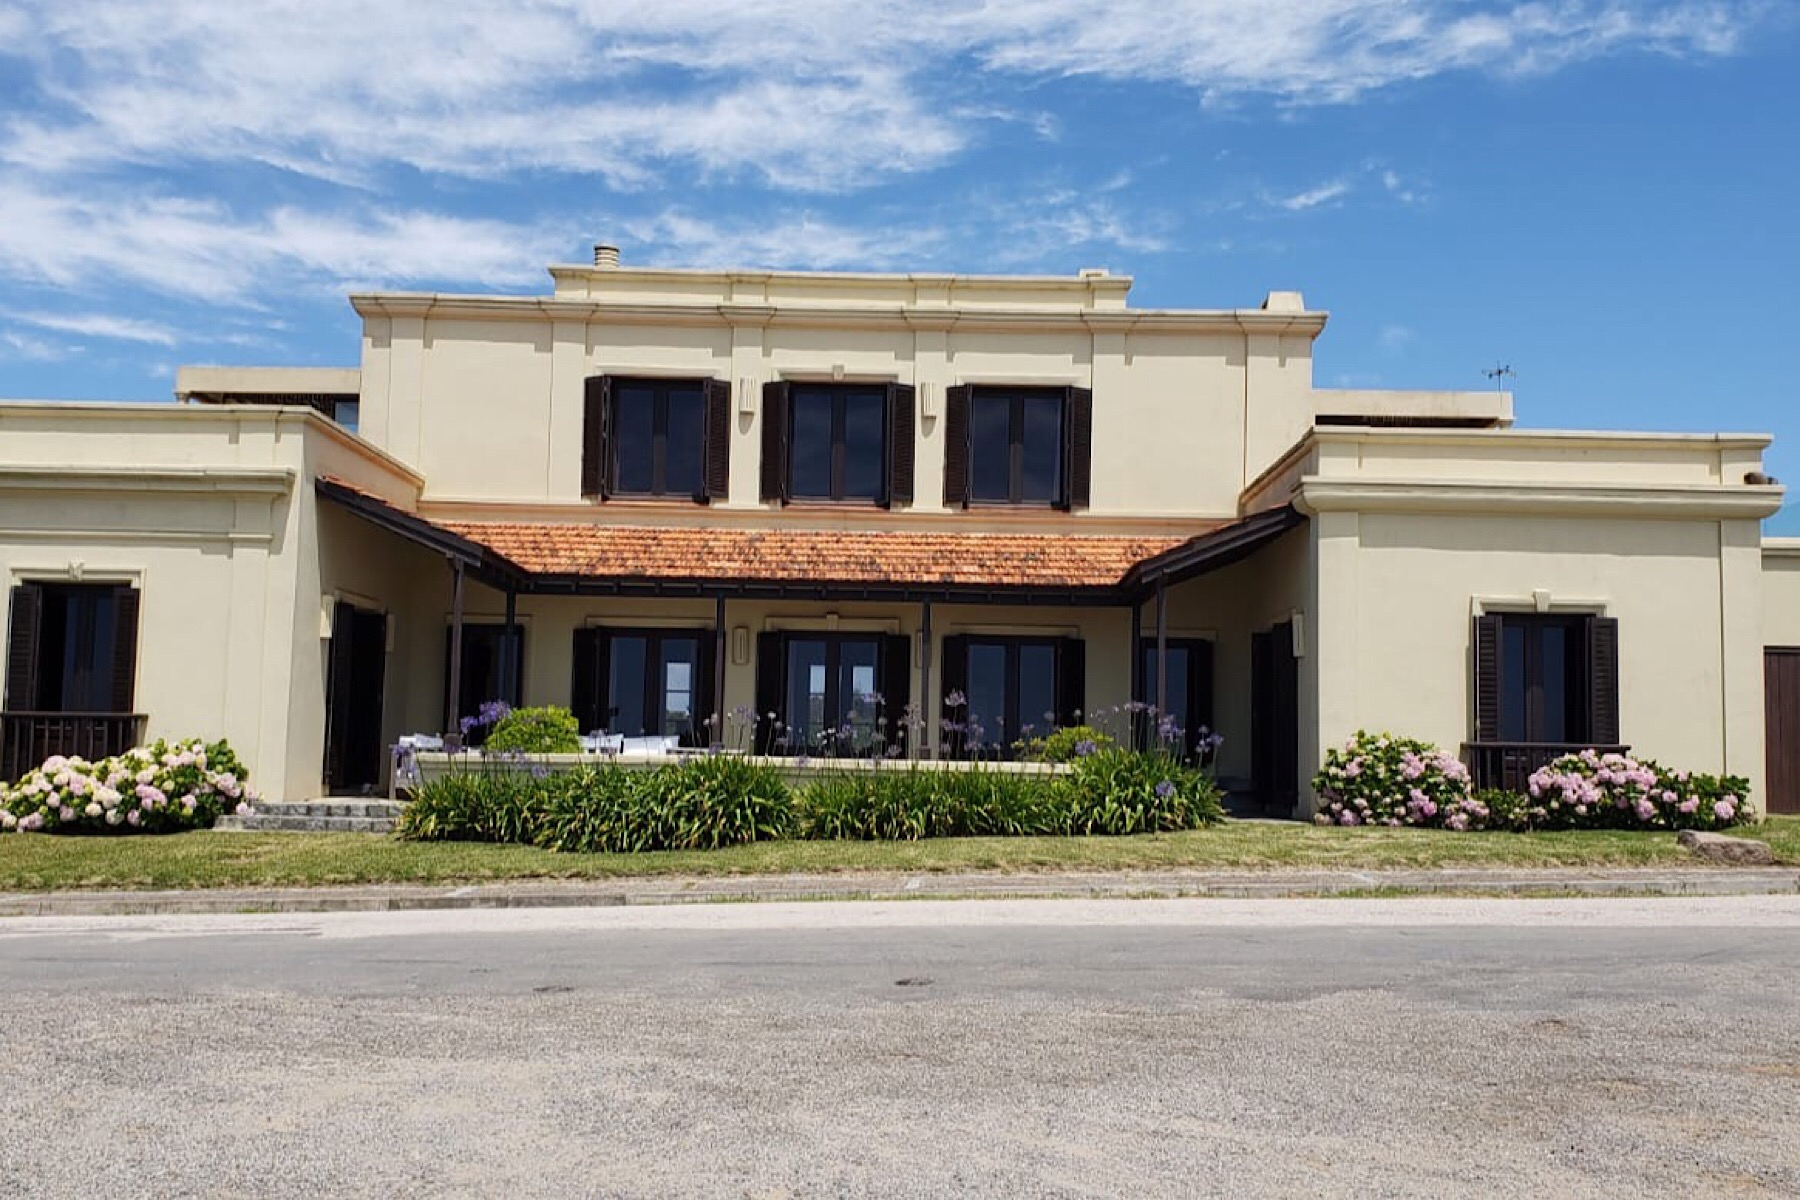 Single Family Home for sale in Rambla de la pedrera Avenida principal, La Pedrera, Rocha ,27004  , Uruguay